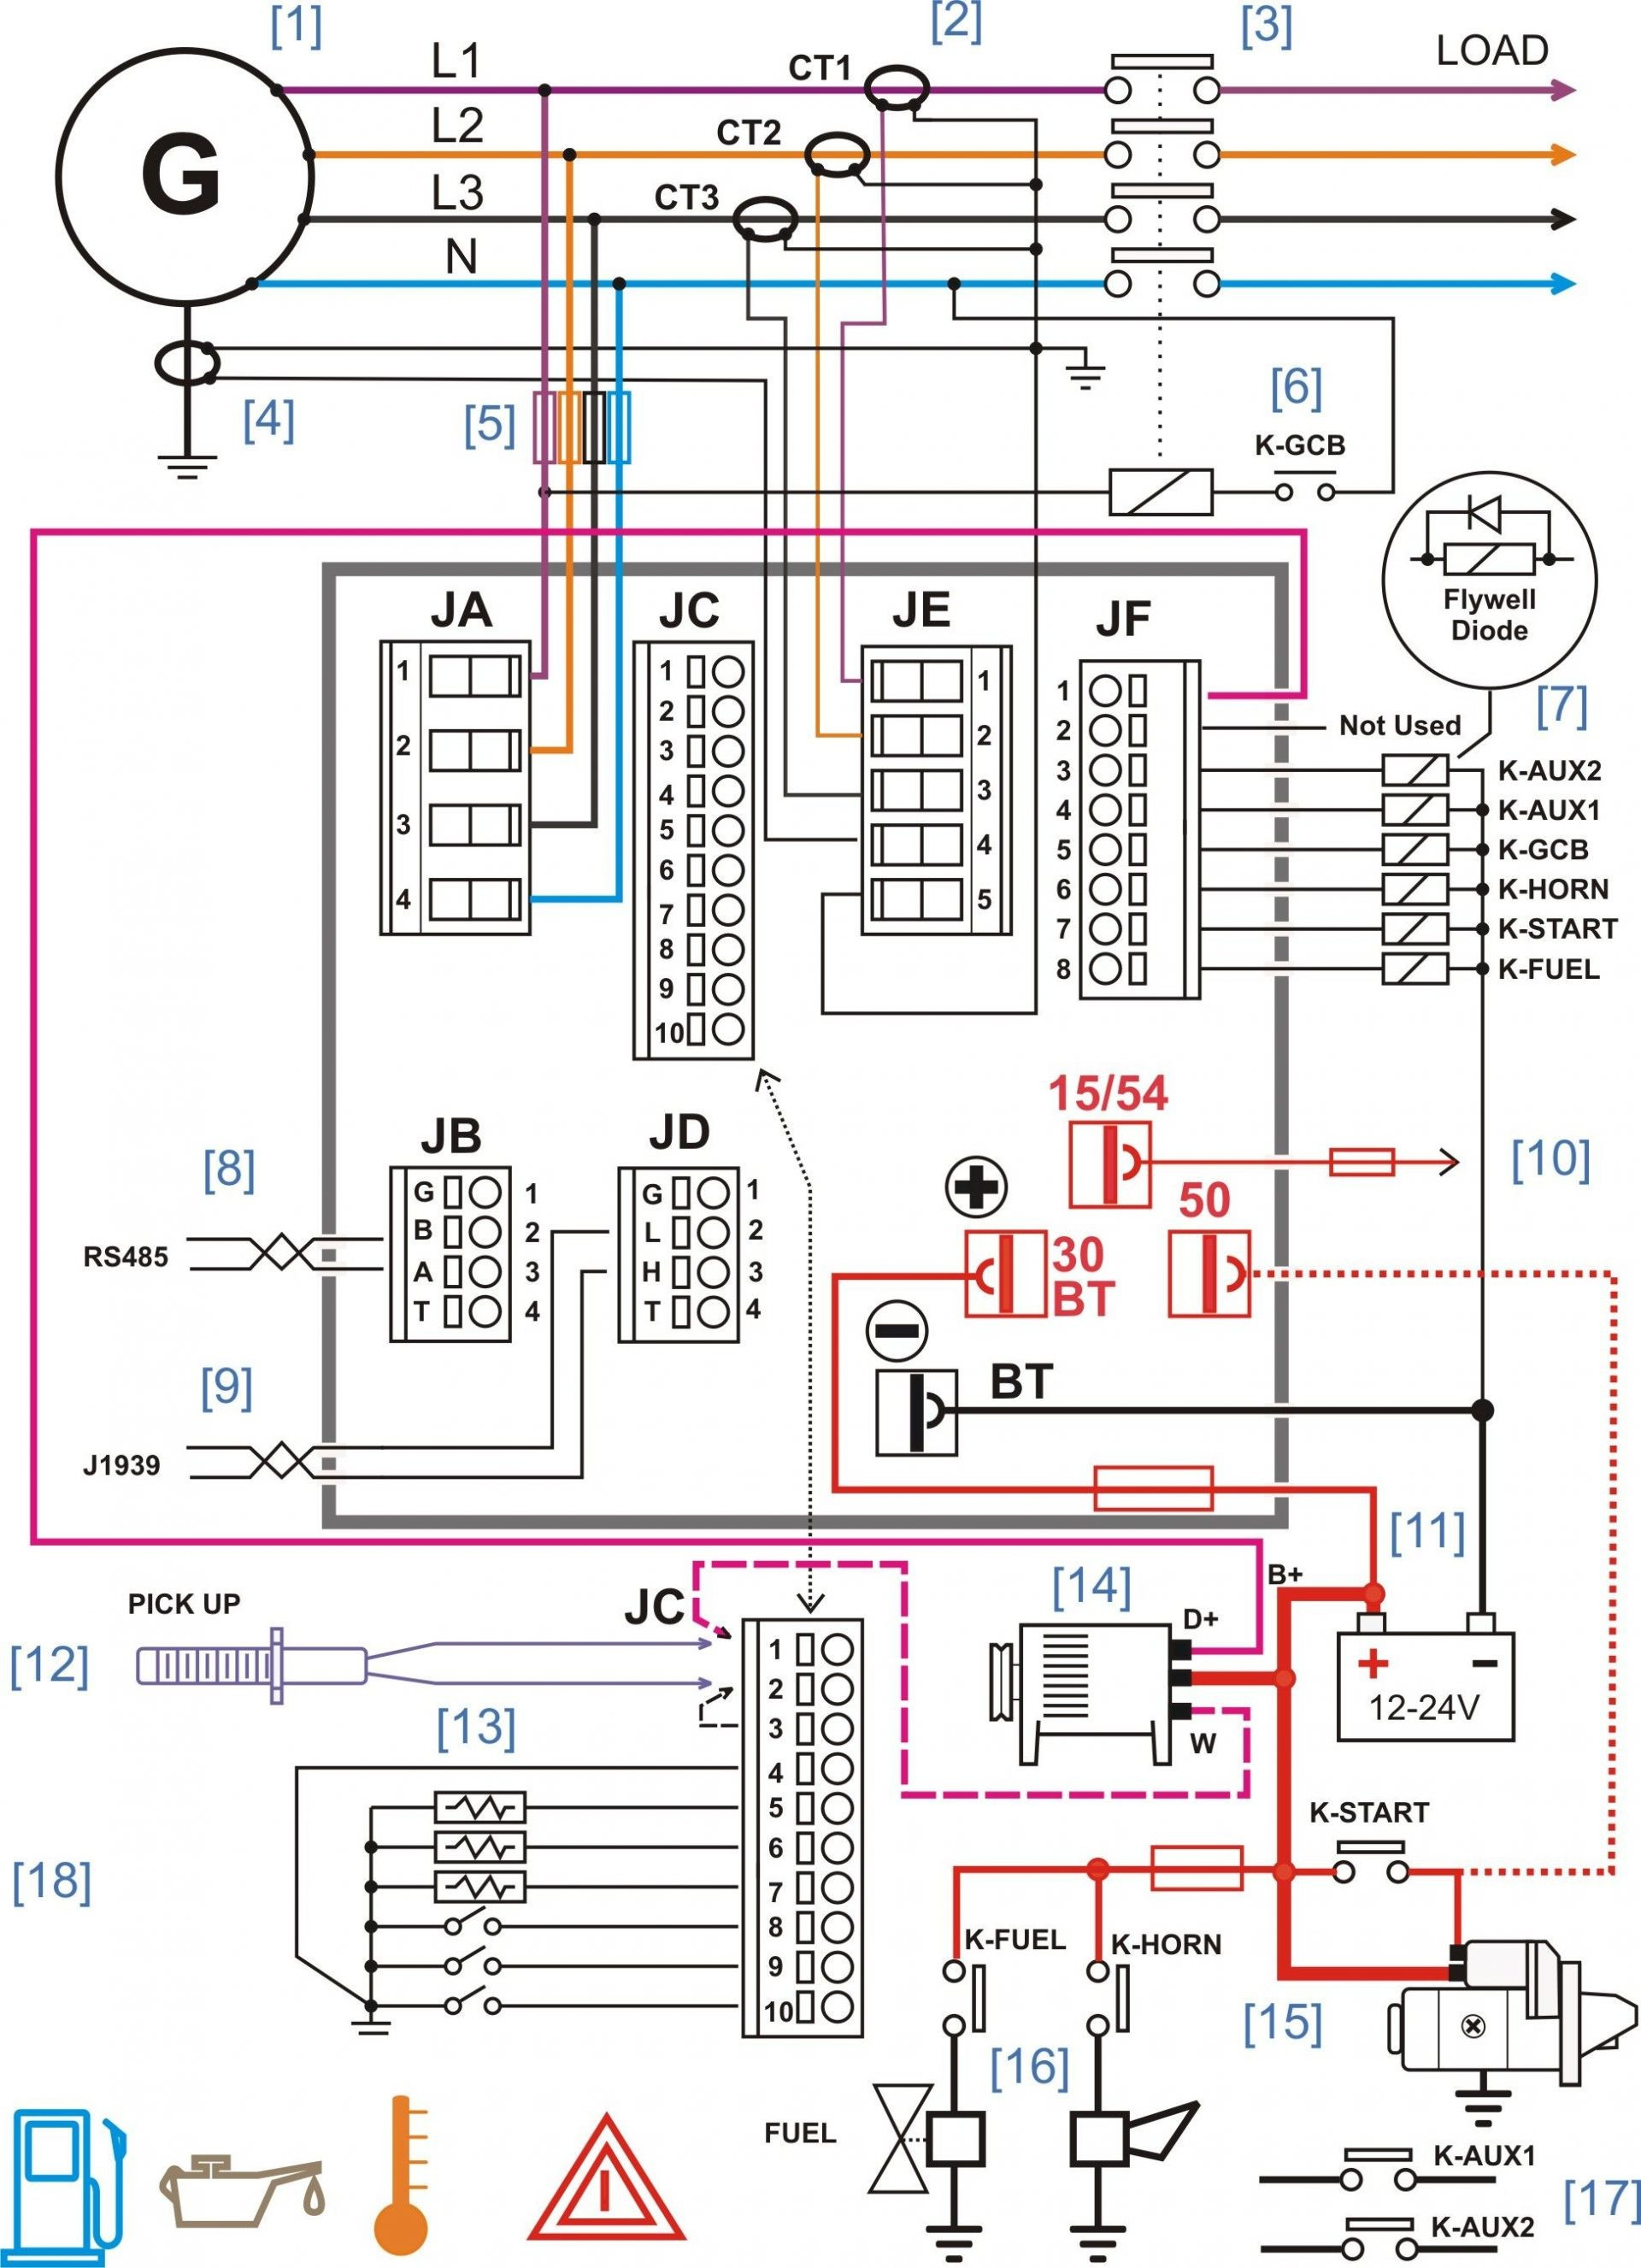 wiring a rv power panel wiring diagram schematics horse trailer wiring  diagram rv control panel wiring